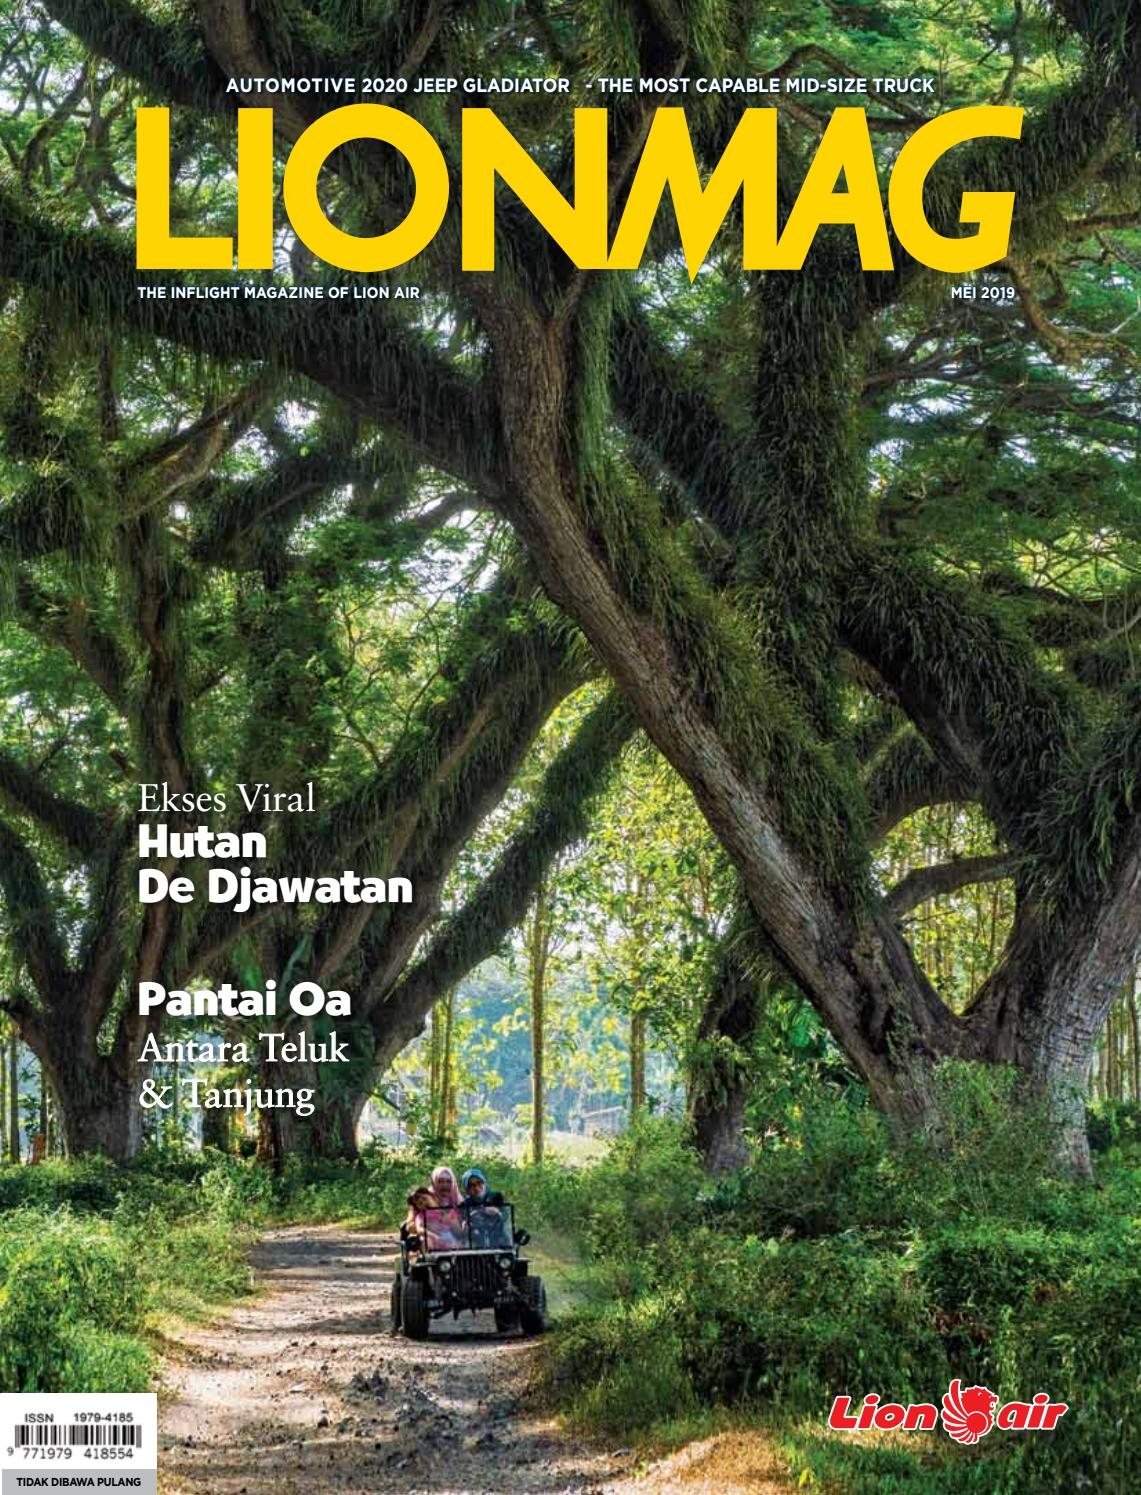 LIONMAG MEI 2019 By Bentang Media Nusantara Issuu